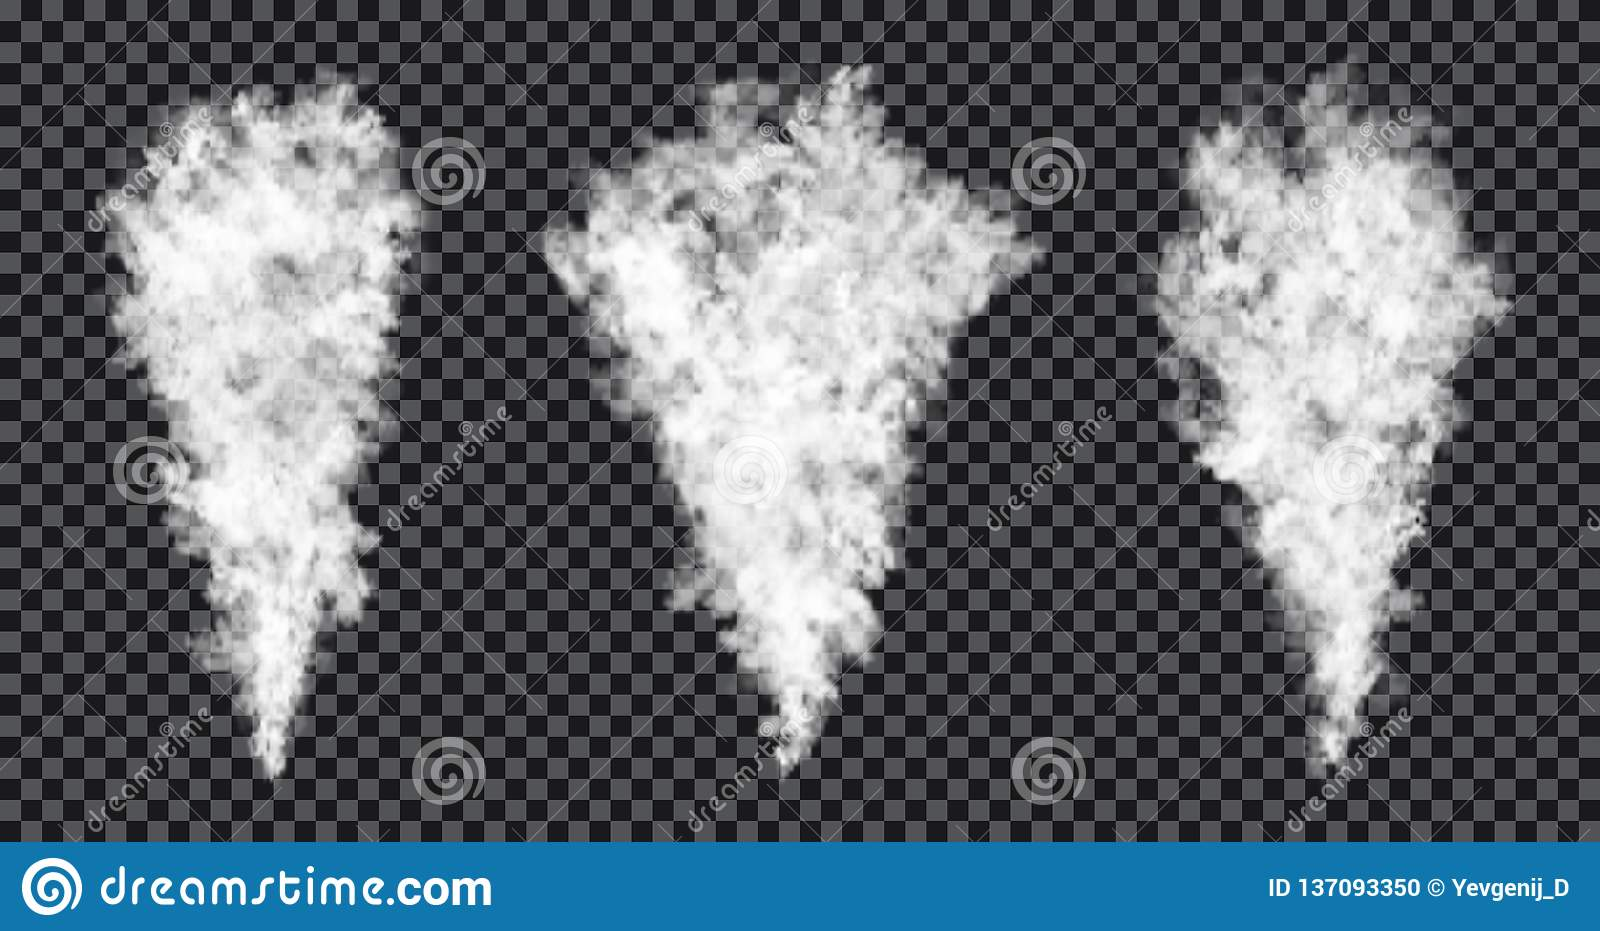 Smoke stream on transparent background. Realistic smoke texture, fog or mist effect